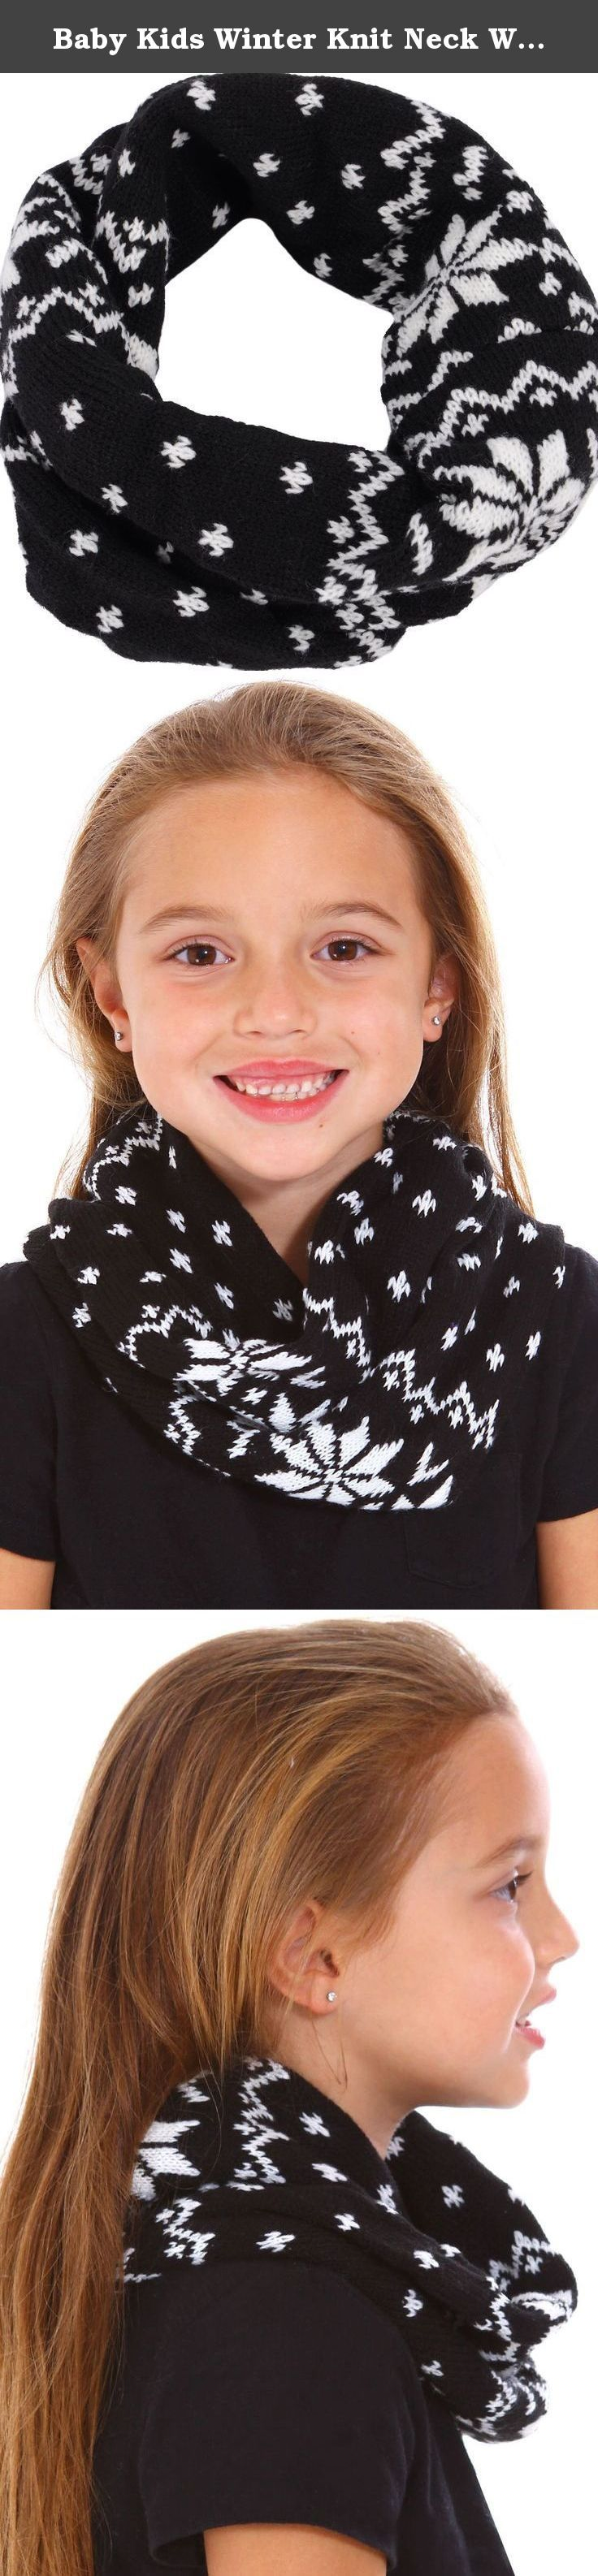 "Baby Kids Winter Knit Neck Warms Toddler Infinity Scarves Circle Round Shawl,Blk. Children's infinity scarf is perfect for the winter season ! Available in cute festive colors and designs. Material: Knit Flat Size: 10""Long x 7"" Width Package Includes: 1 x Children's Scarf."